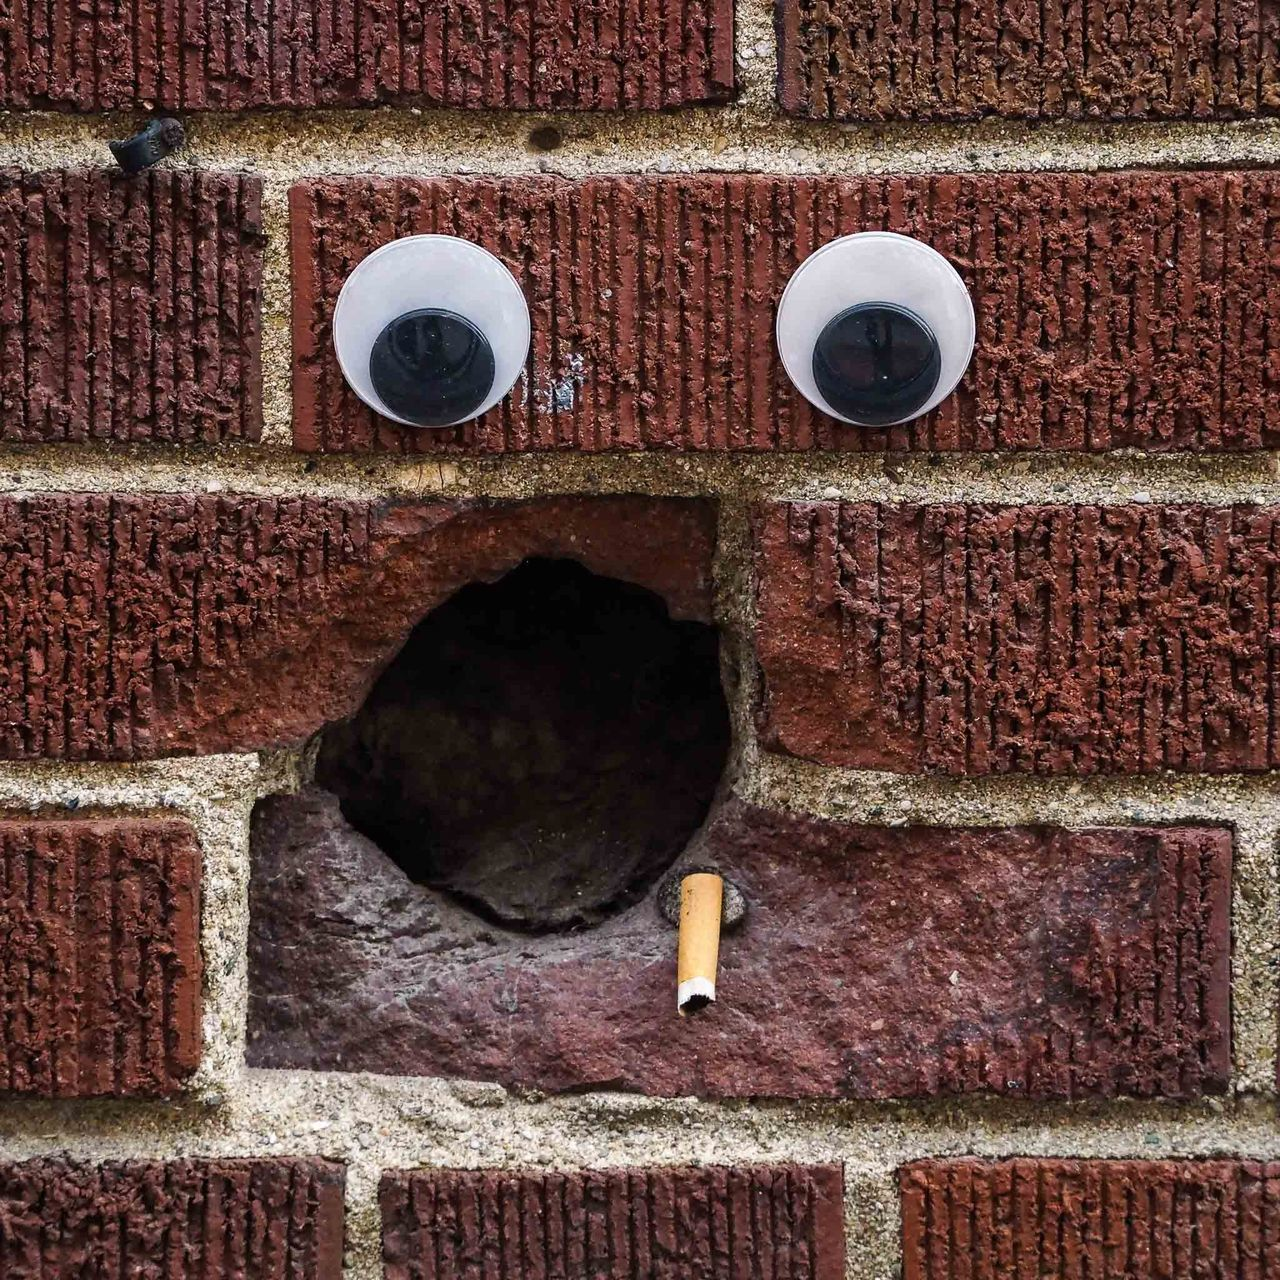 brick wall, architecture, day, outdoors, no people, built structure, textured, red, building exterior, close-up, anthropomorphic face